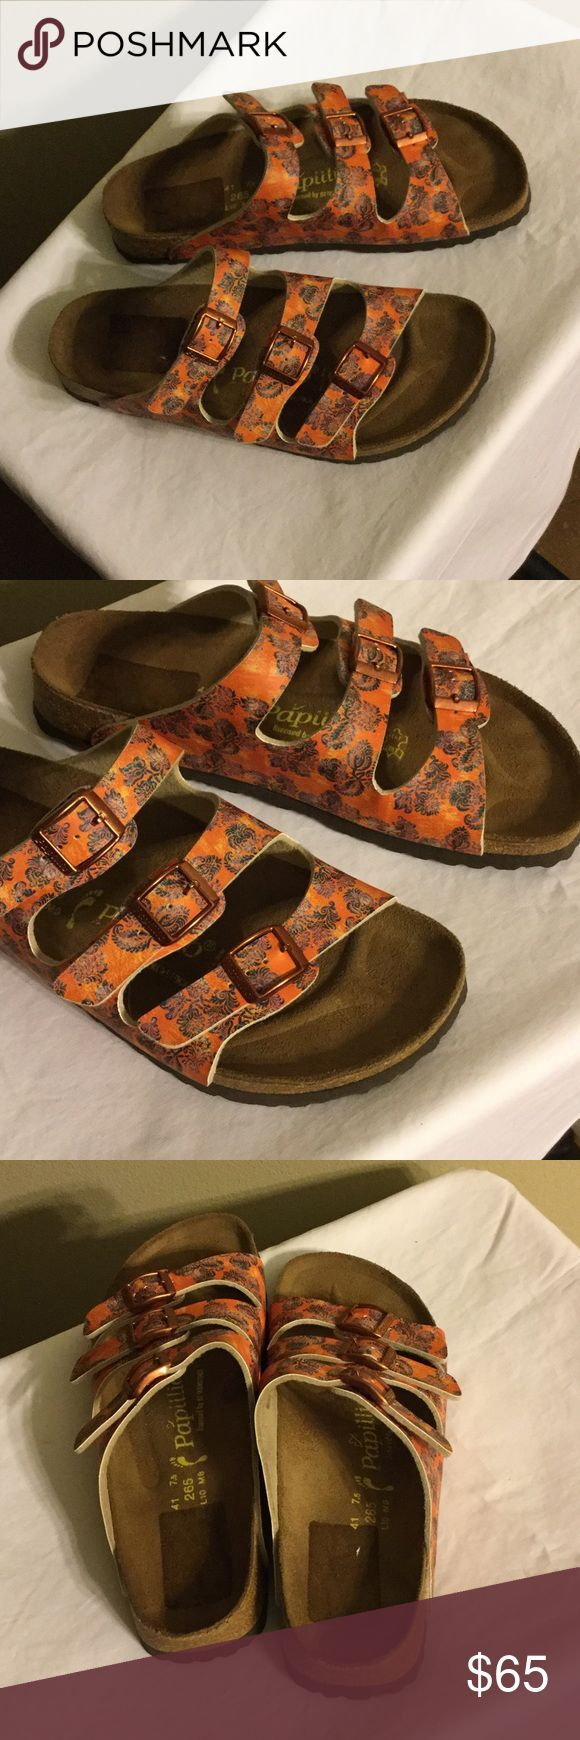 Papillio  Florida Orange Paisley Sandals Very nice Sandals Floral Florida style Papillio.  Only worn one time.  Buckles are rose gold and sandals are orange color.  (No Box). Feel free to ask any questions. Birkenstock Shoes Sandals